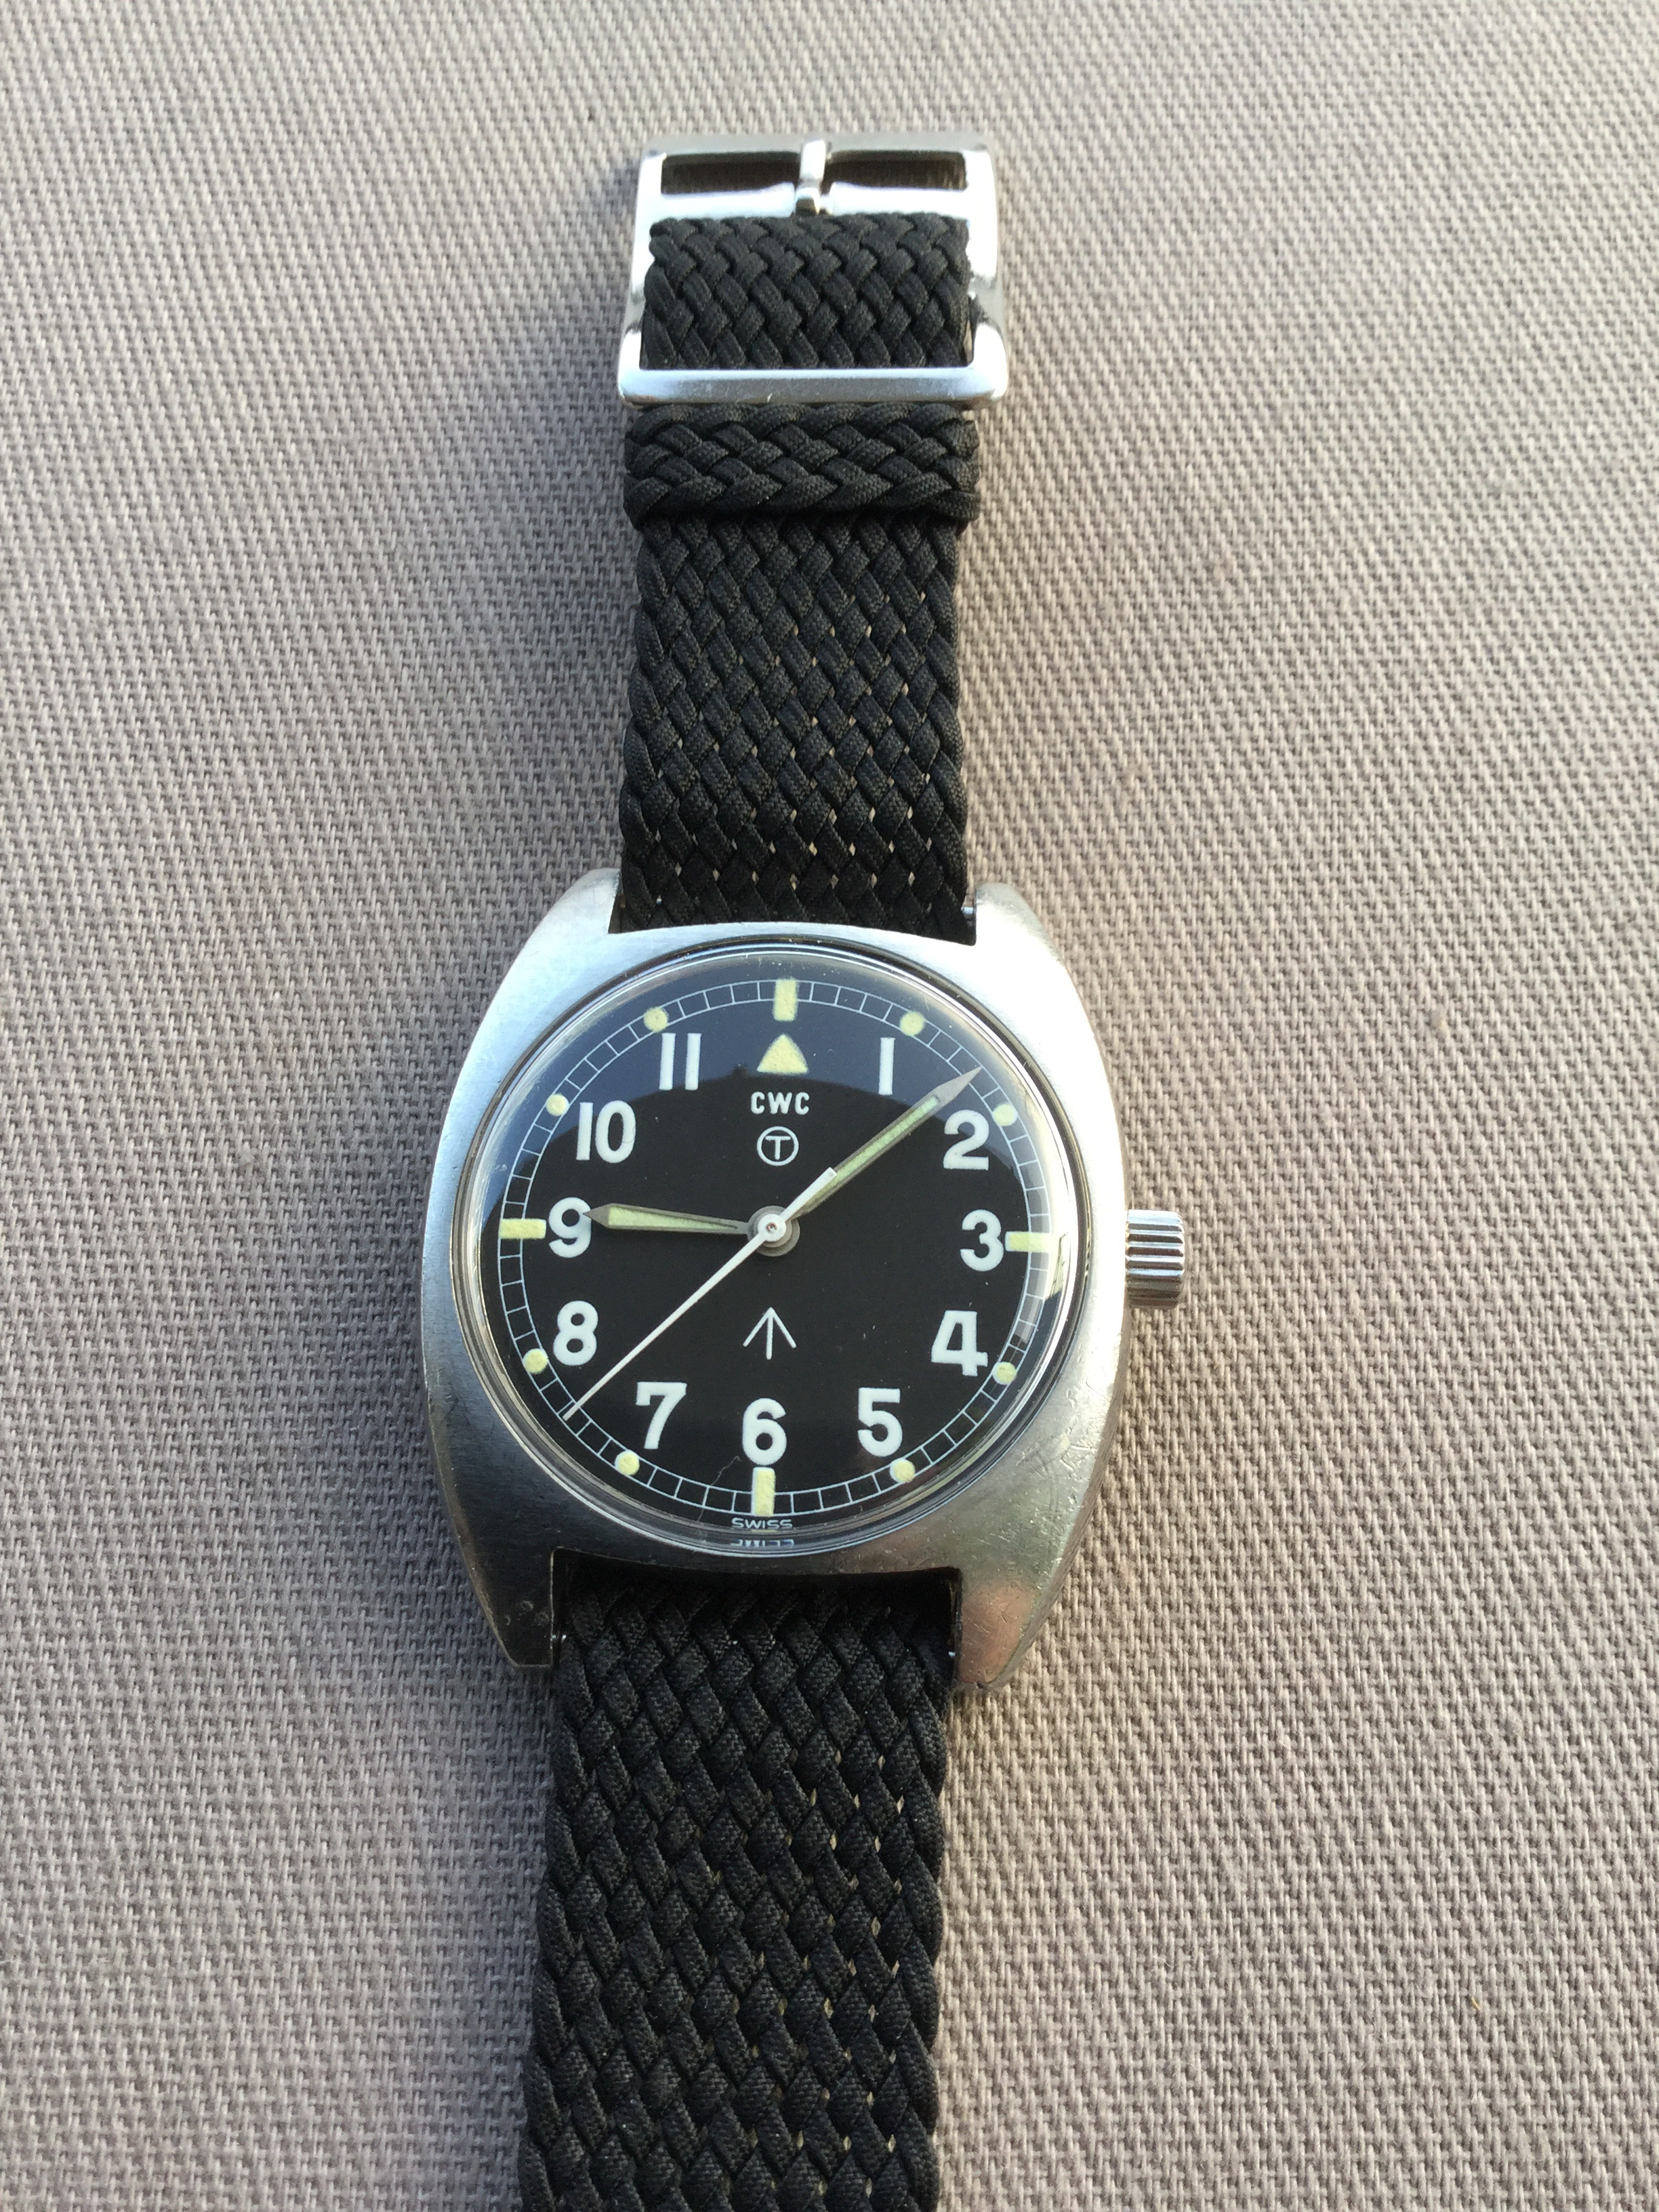 army goodwill favorite my find watch watches r swiss was cavalry comments a